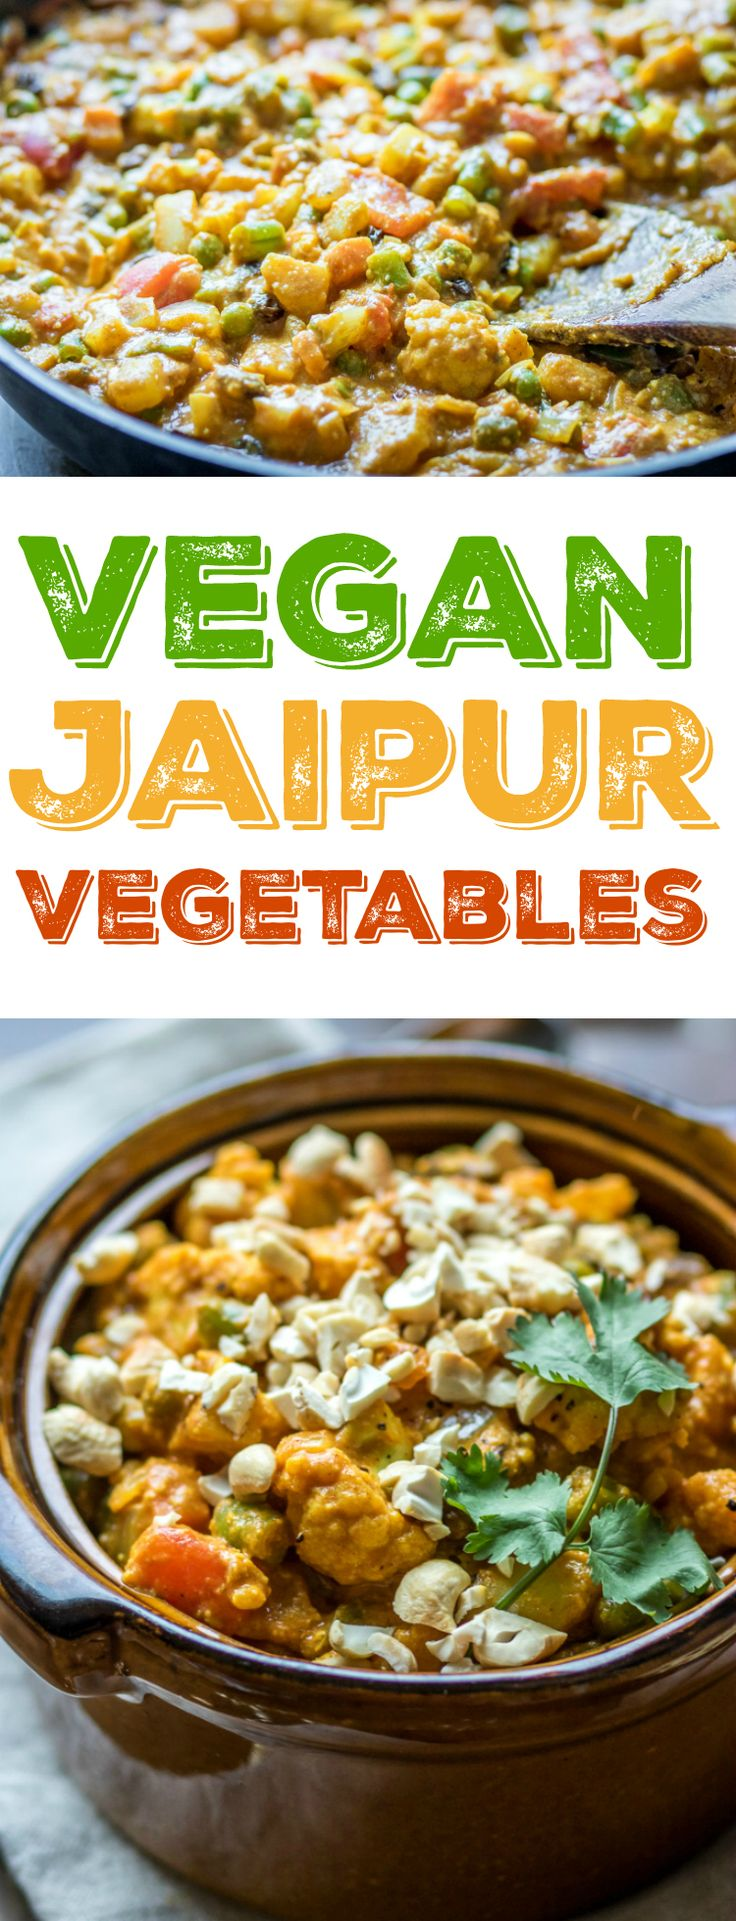 452 best asian indian food and recipes images on pinterest asian jaipur vegetables copycat recipe forumfinder Images